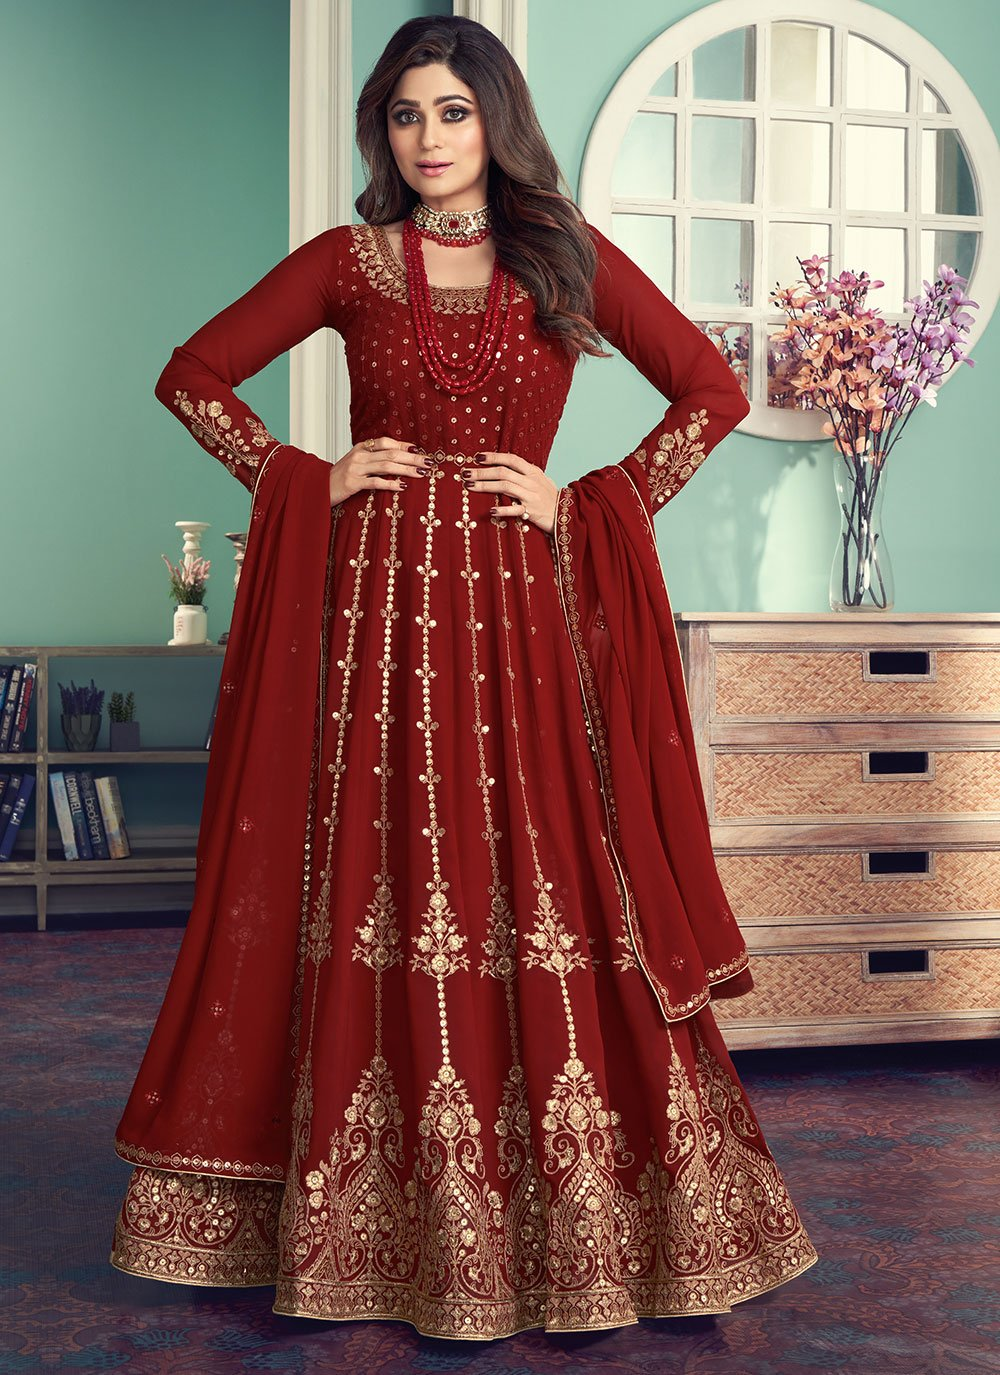 Shamita Shetty Faux Georgette Embroidered Maroon Designer Floor Length Suit